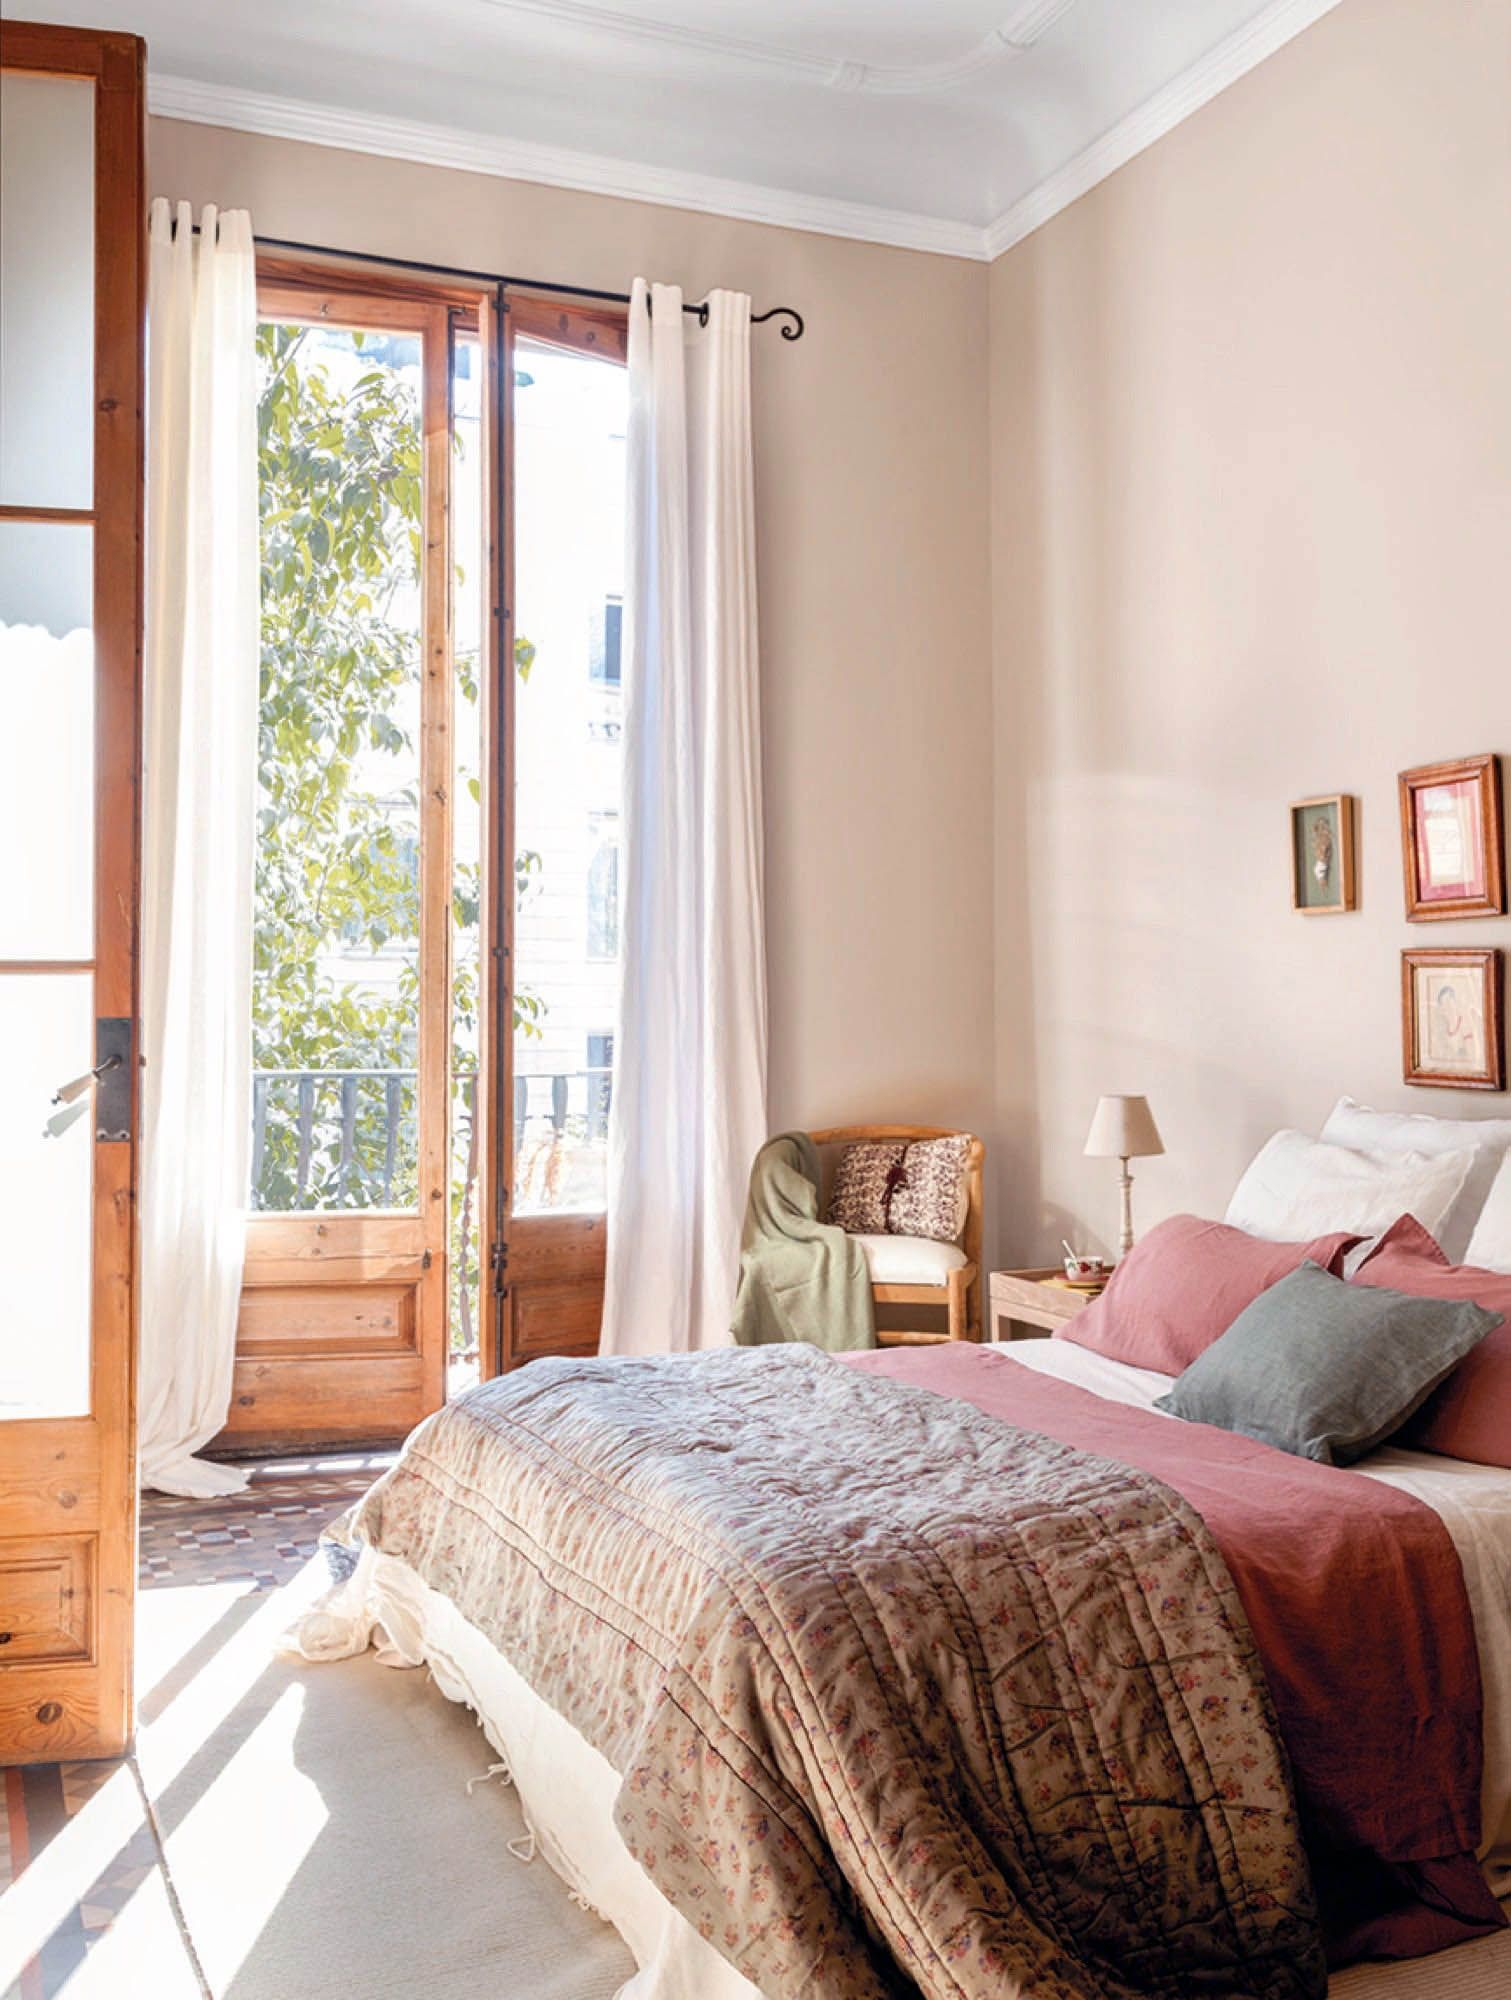 9 Ways to Take a Bed Room in Your Small Apartment | Home ...